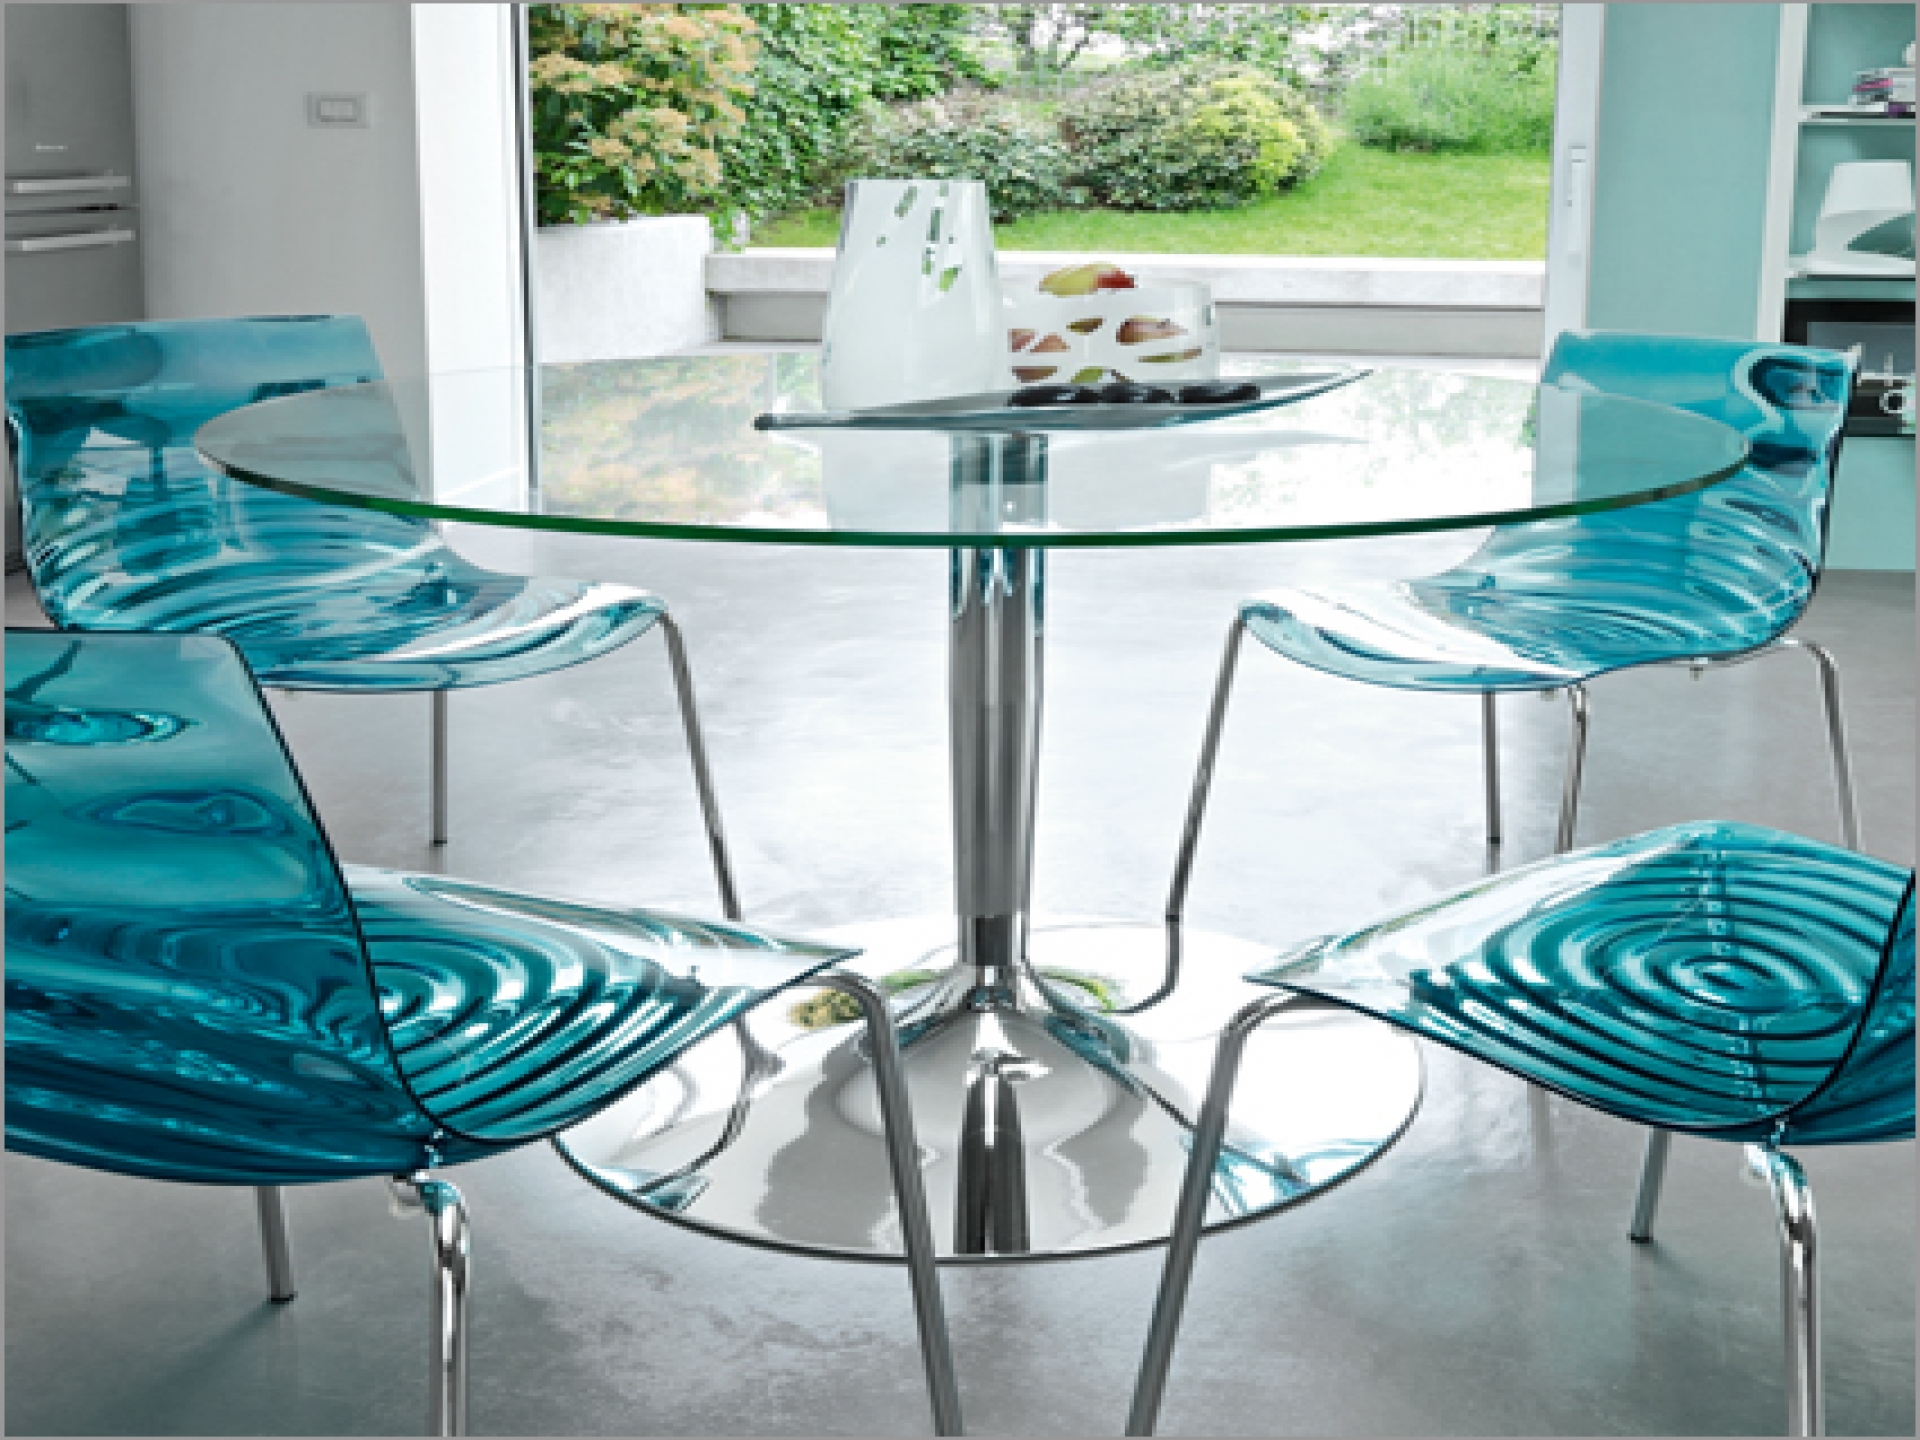 Plastic kitchen chairs Photo - 6